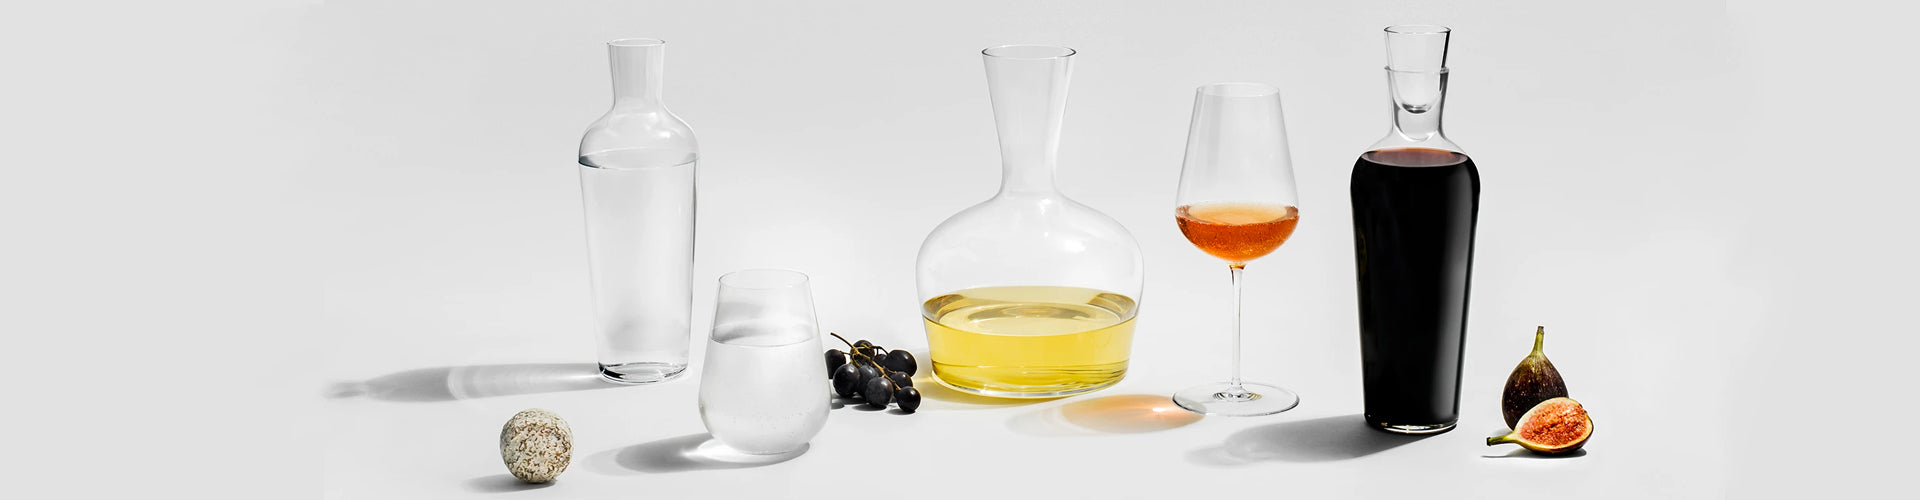 The Jancis Robinson x Richard Brendon Glassware Collection